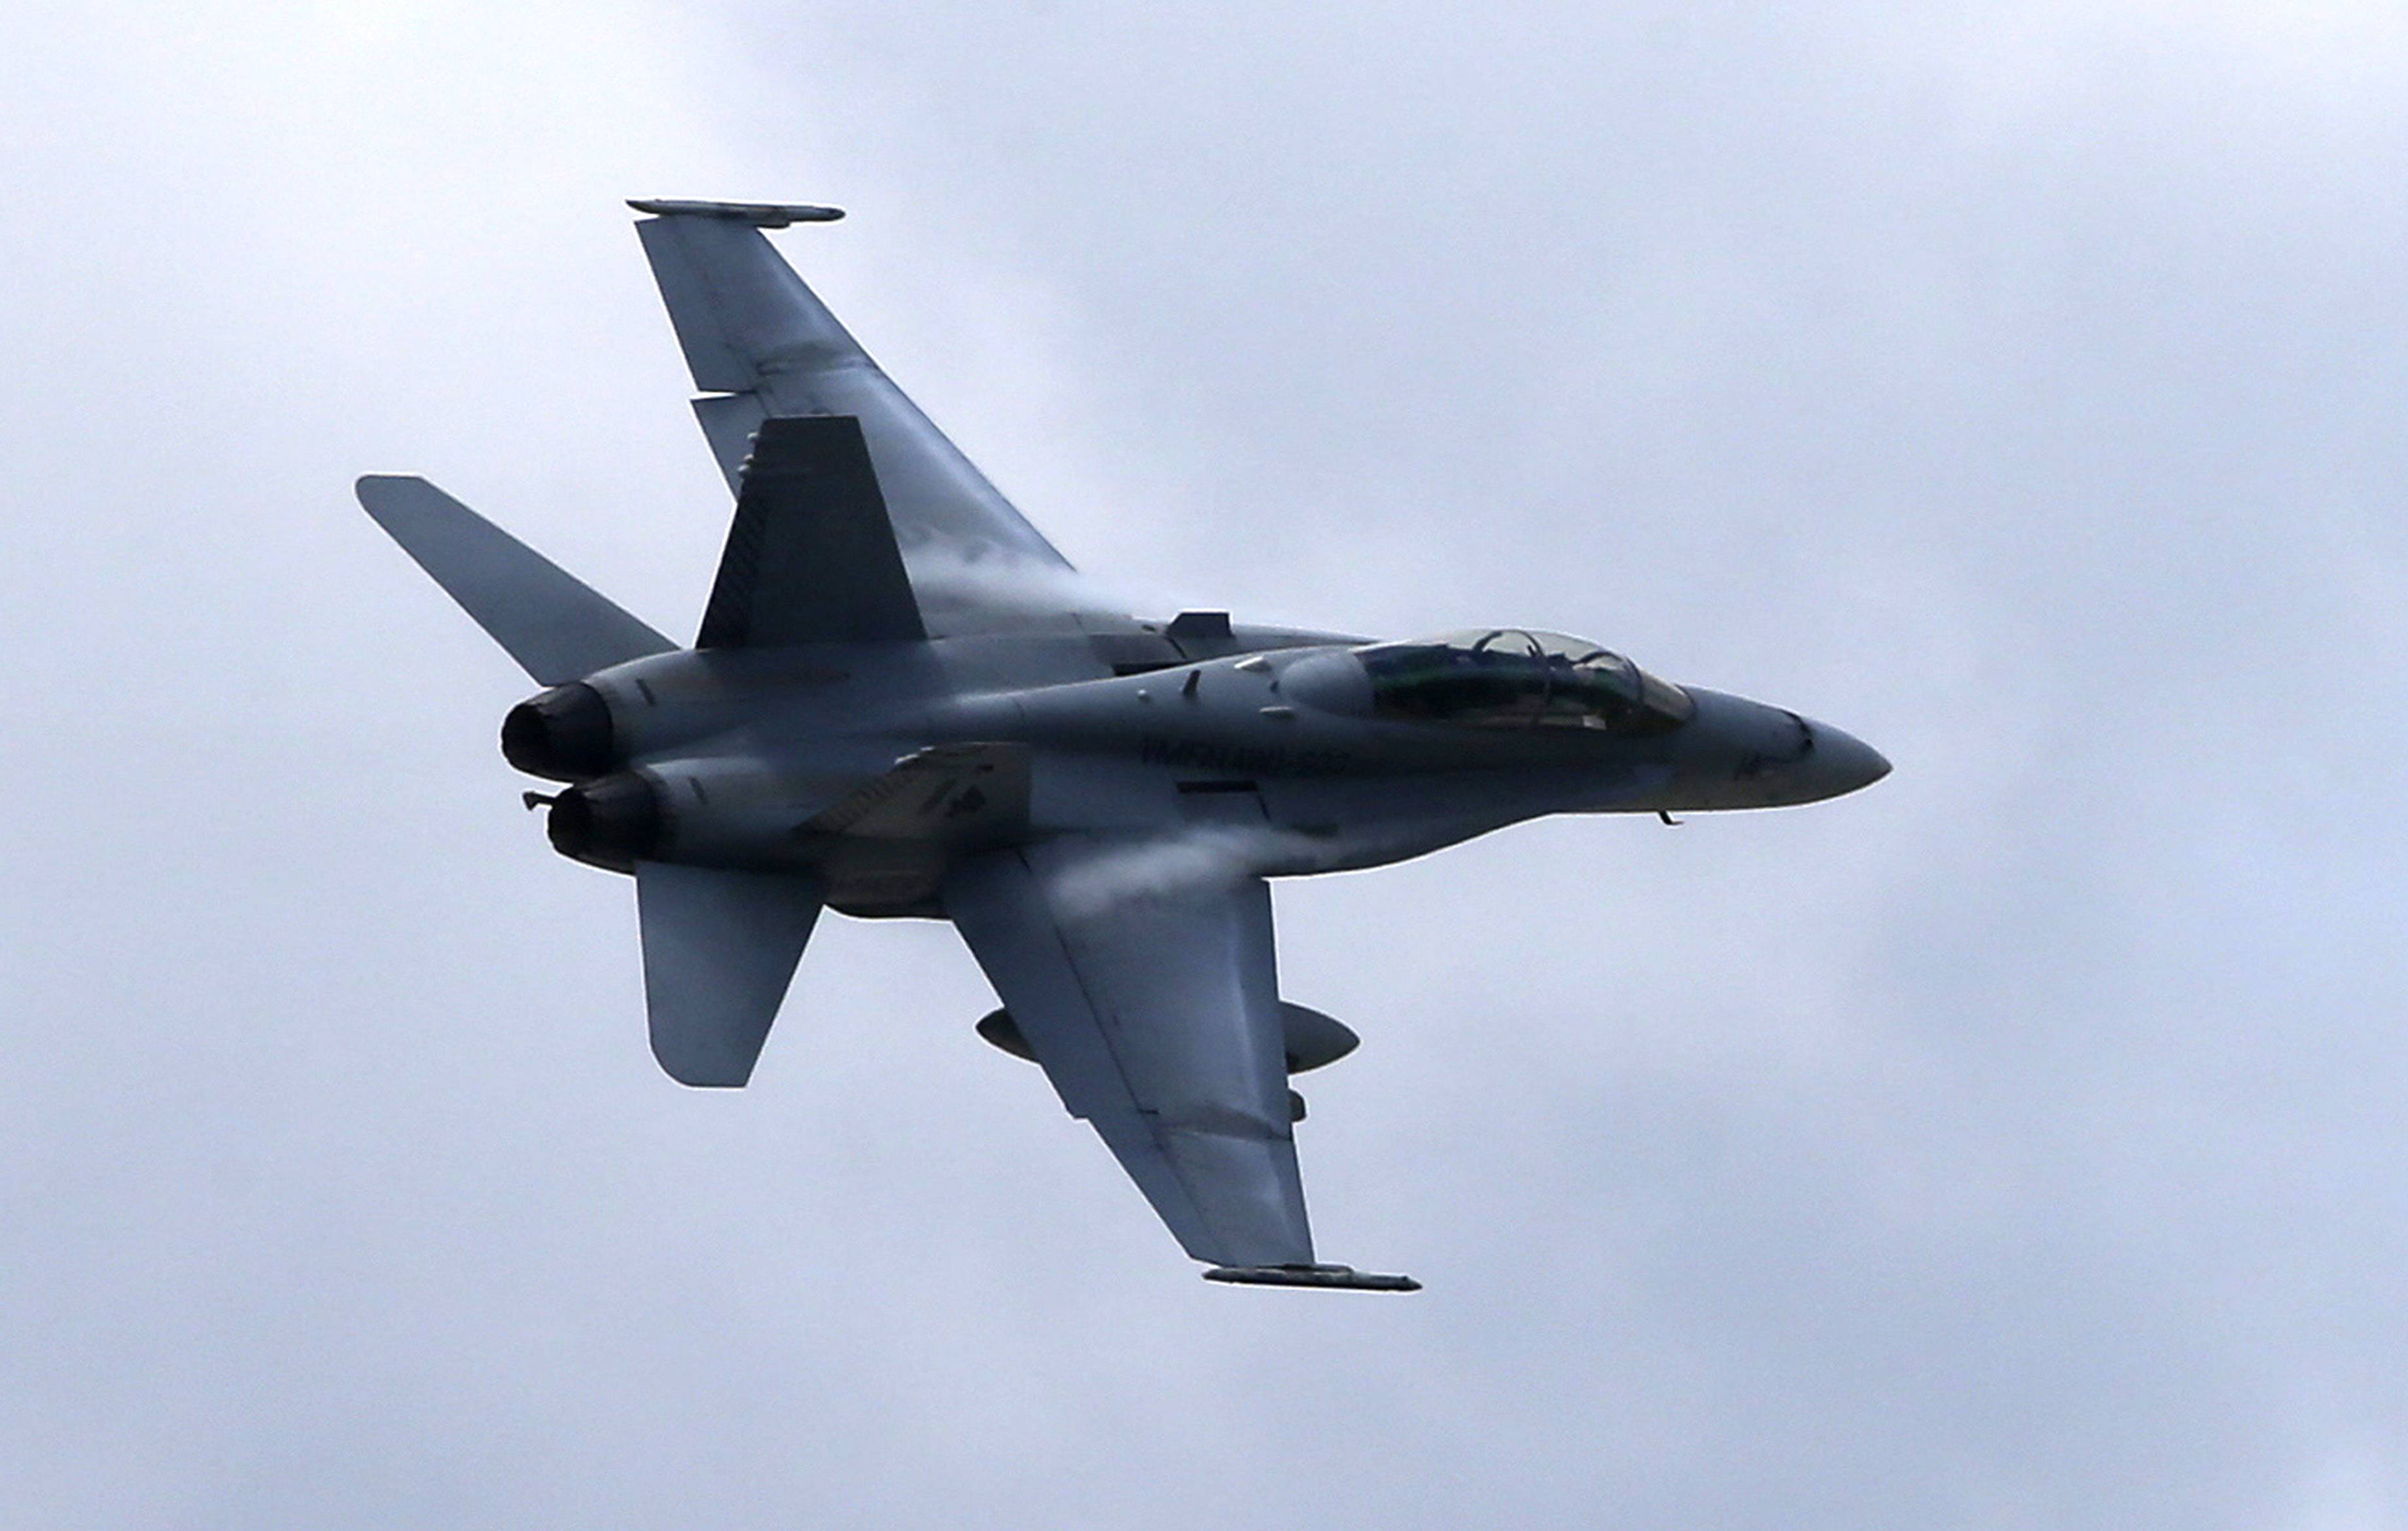 A U.S. Marine F/A-18 Hornet jet. The U.S. launched its first airstrikes into Iraq Friday. Rear Adm. John Kirby, Pentagon spokesman, said two F/A-18 fighters flying off the aircraft carrier USS George HW Bush in the Persian Gulf dropped two laser-guided 500-pound bombs on an Islamic State artillery piece and the truck towing it.